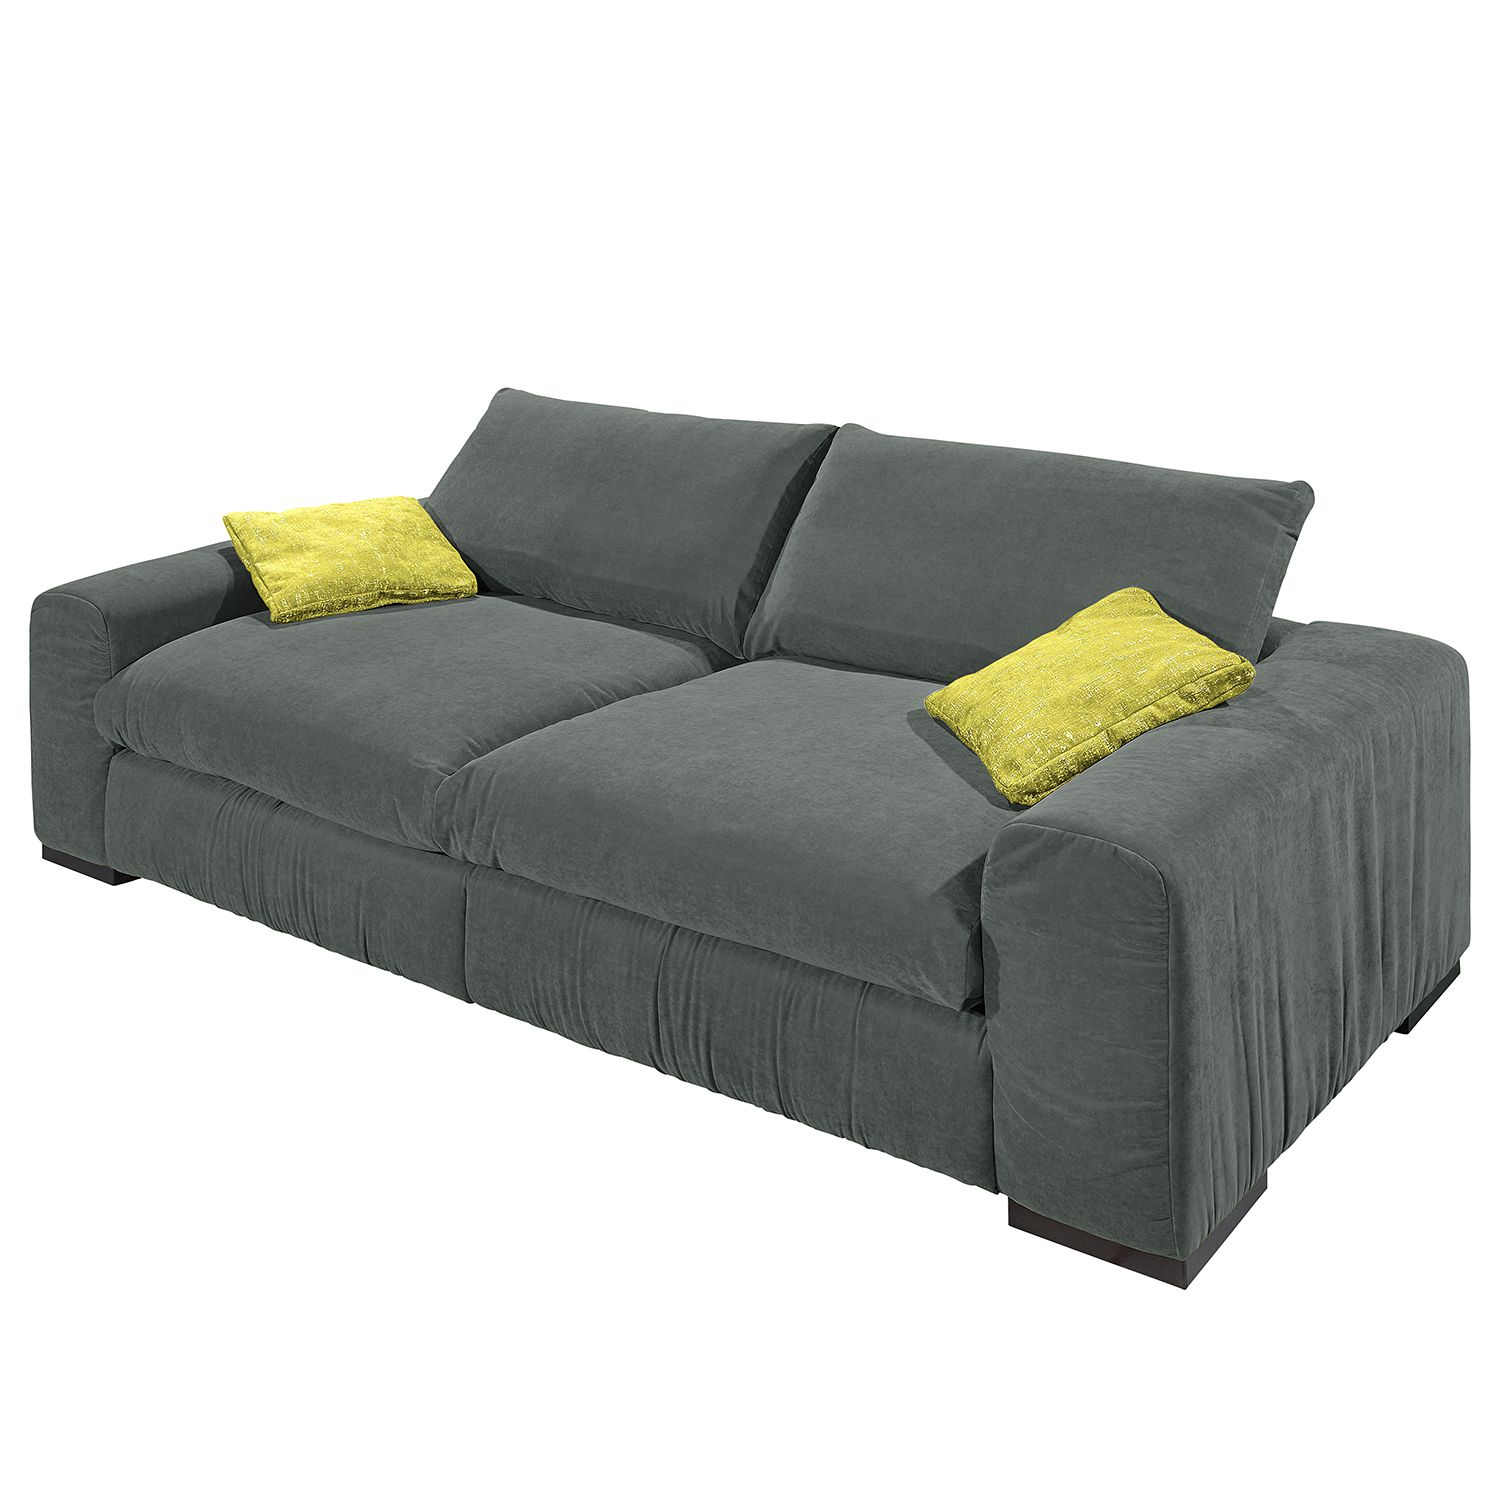 big sofa mehr als 1000 angebote fotos preise. Black Bedroom Furniture Sets. Home Design Ideas